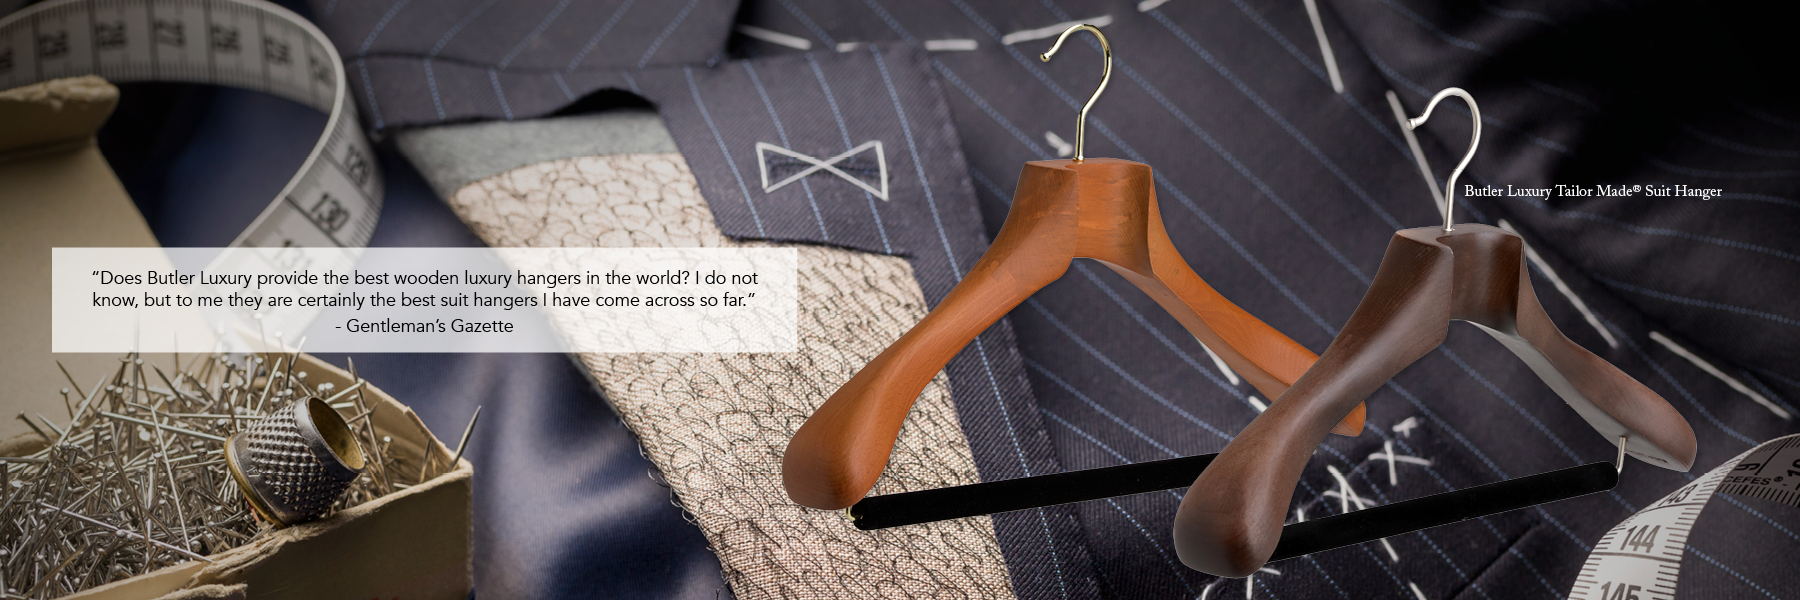 Butler Luxury Men's Wood Suit Hangers